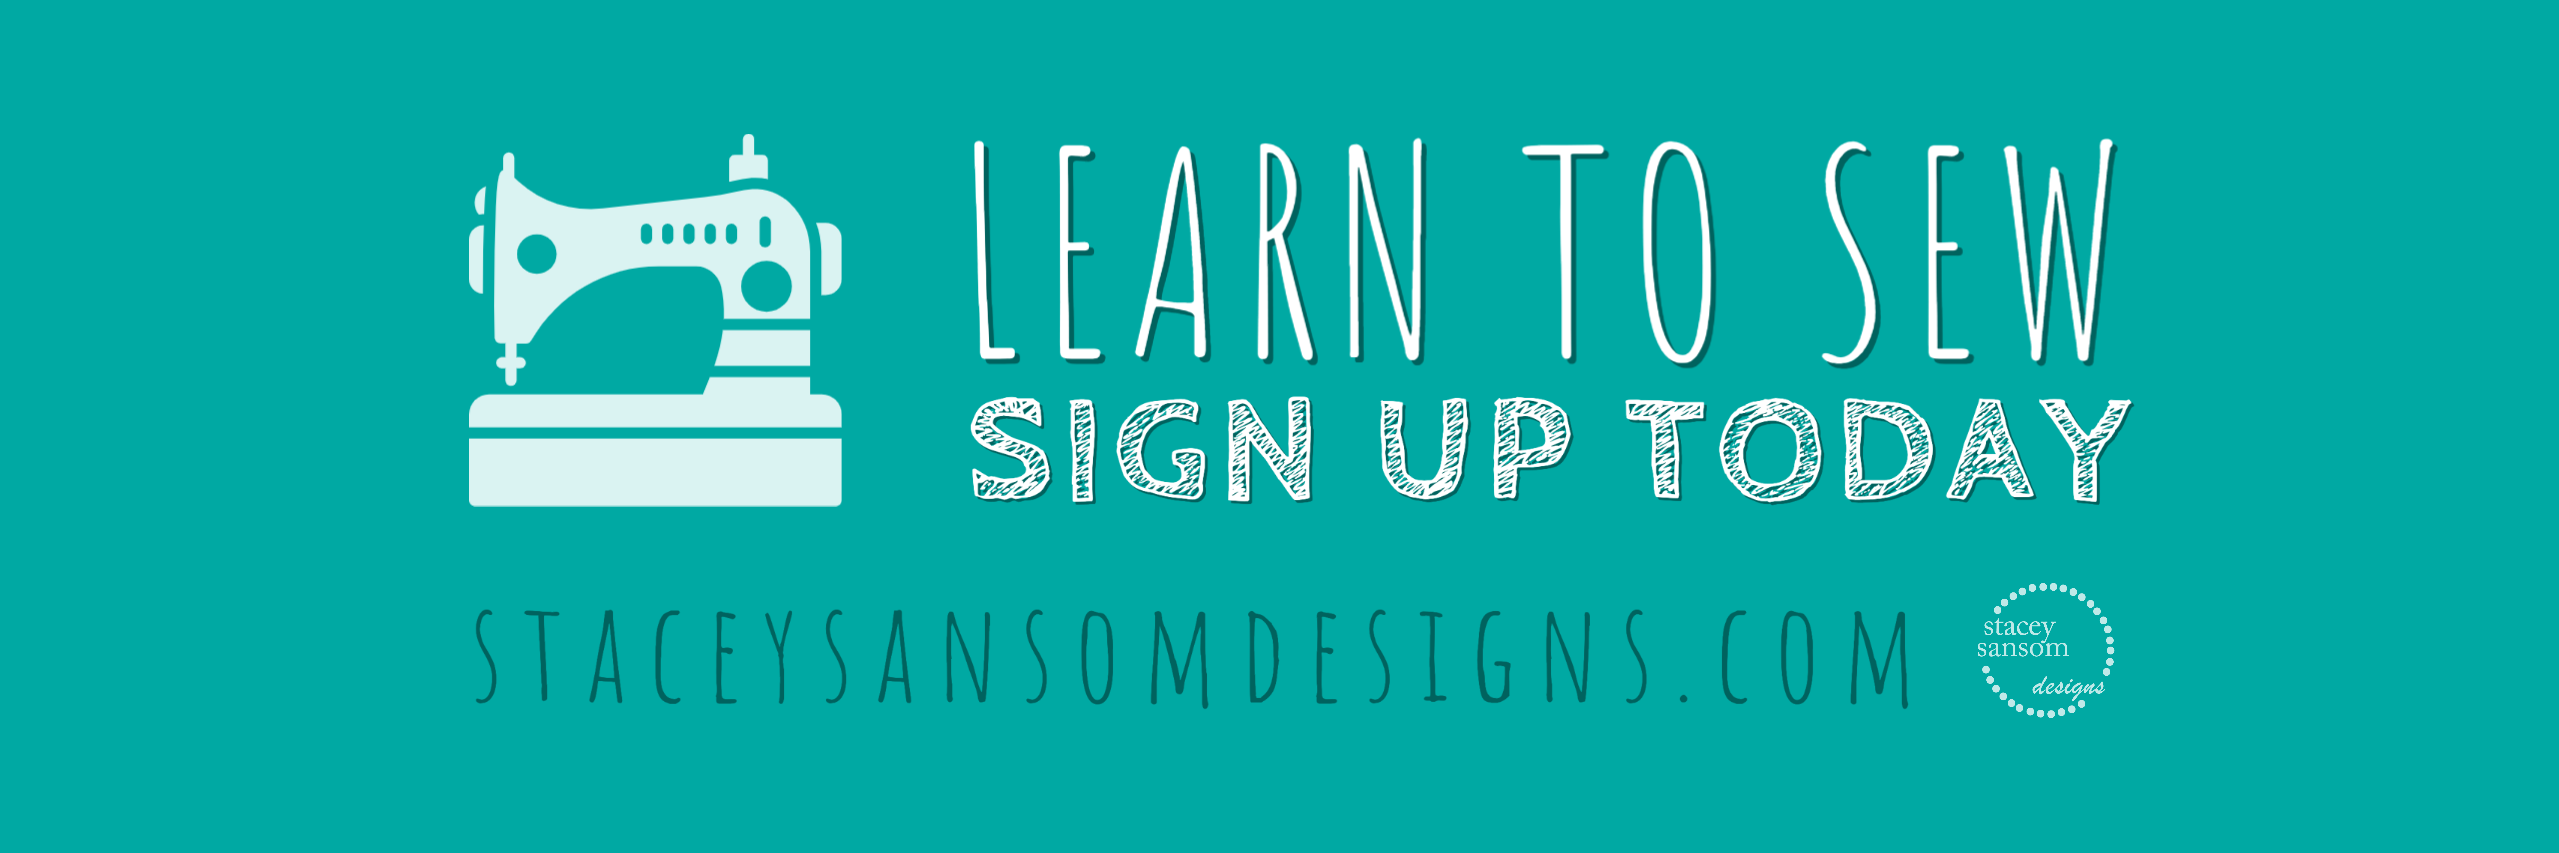 Learn to Sew | Sewing Class Registration Now Open! | Stacey Sansom Designs